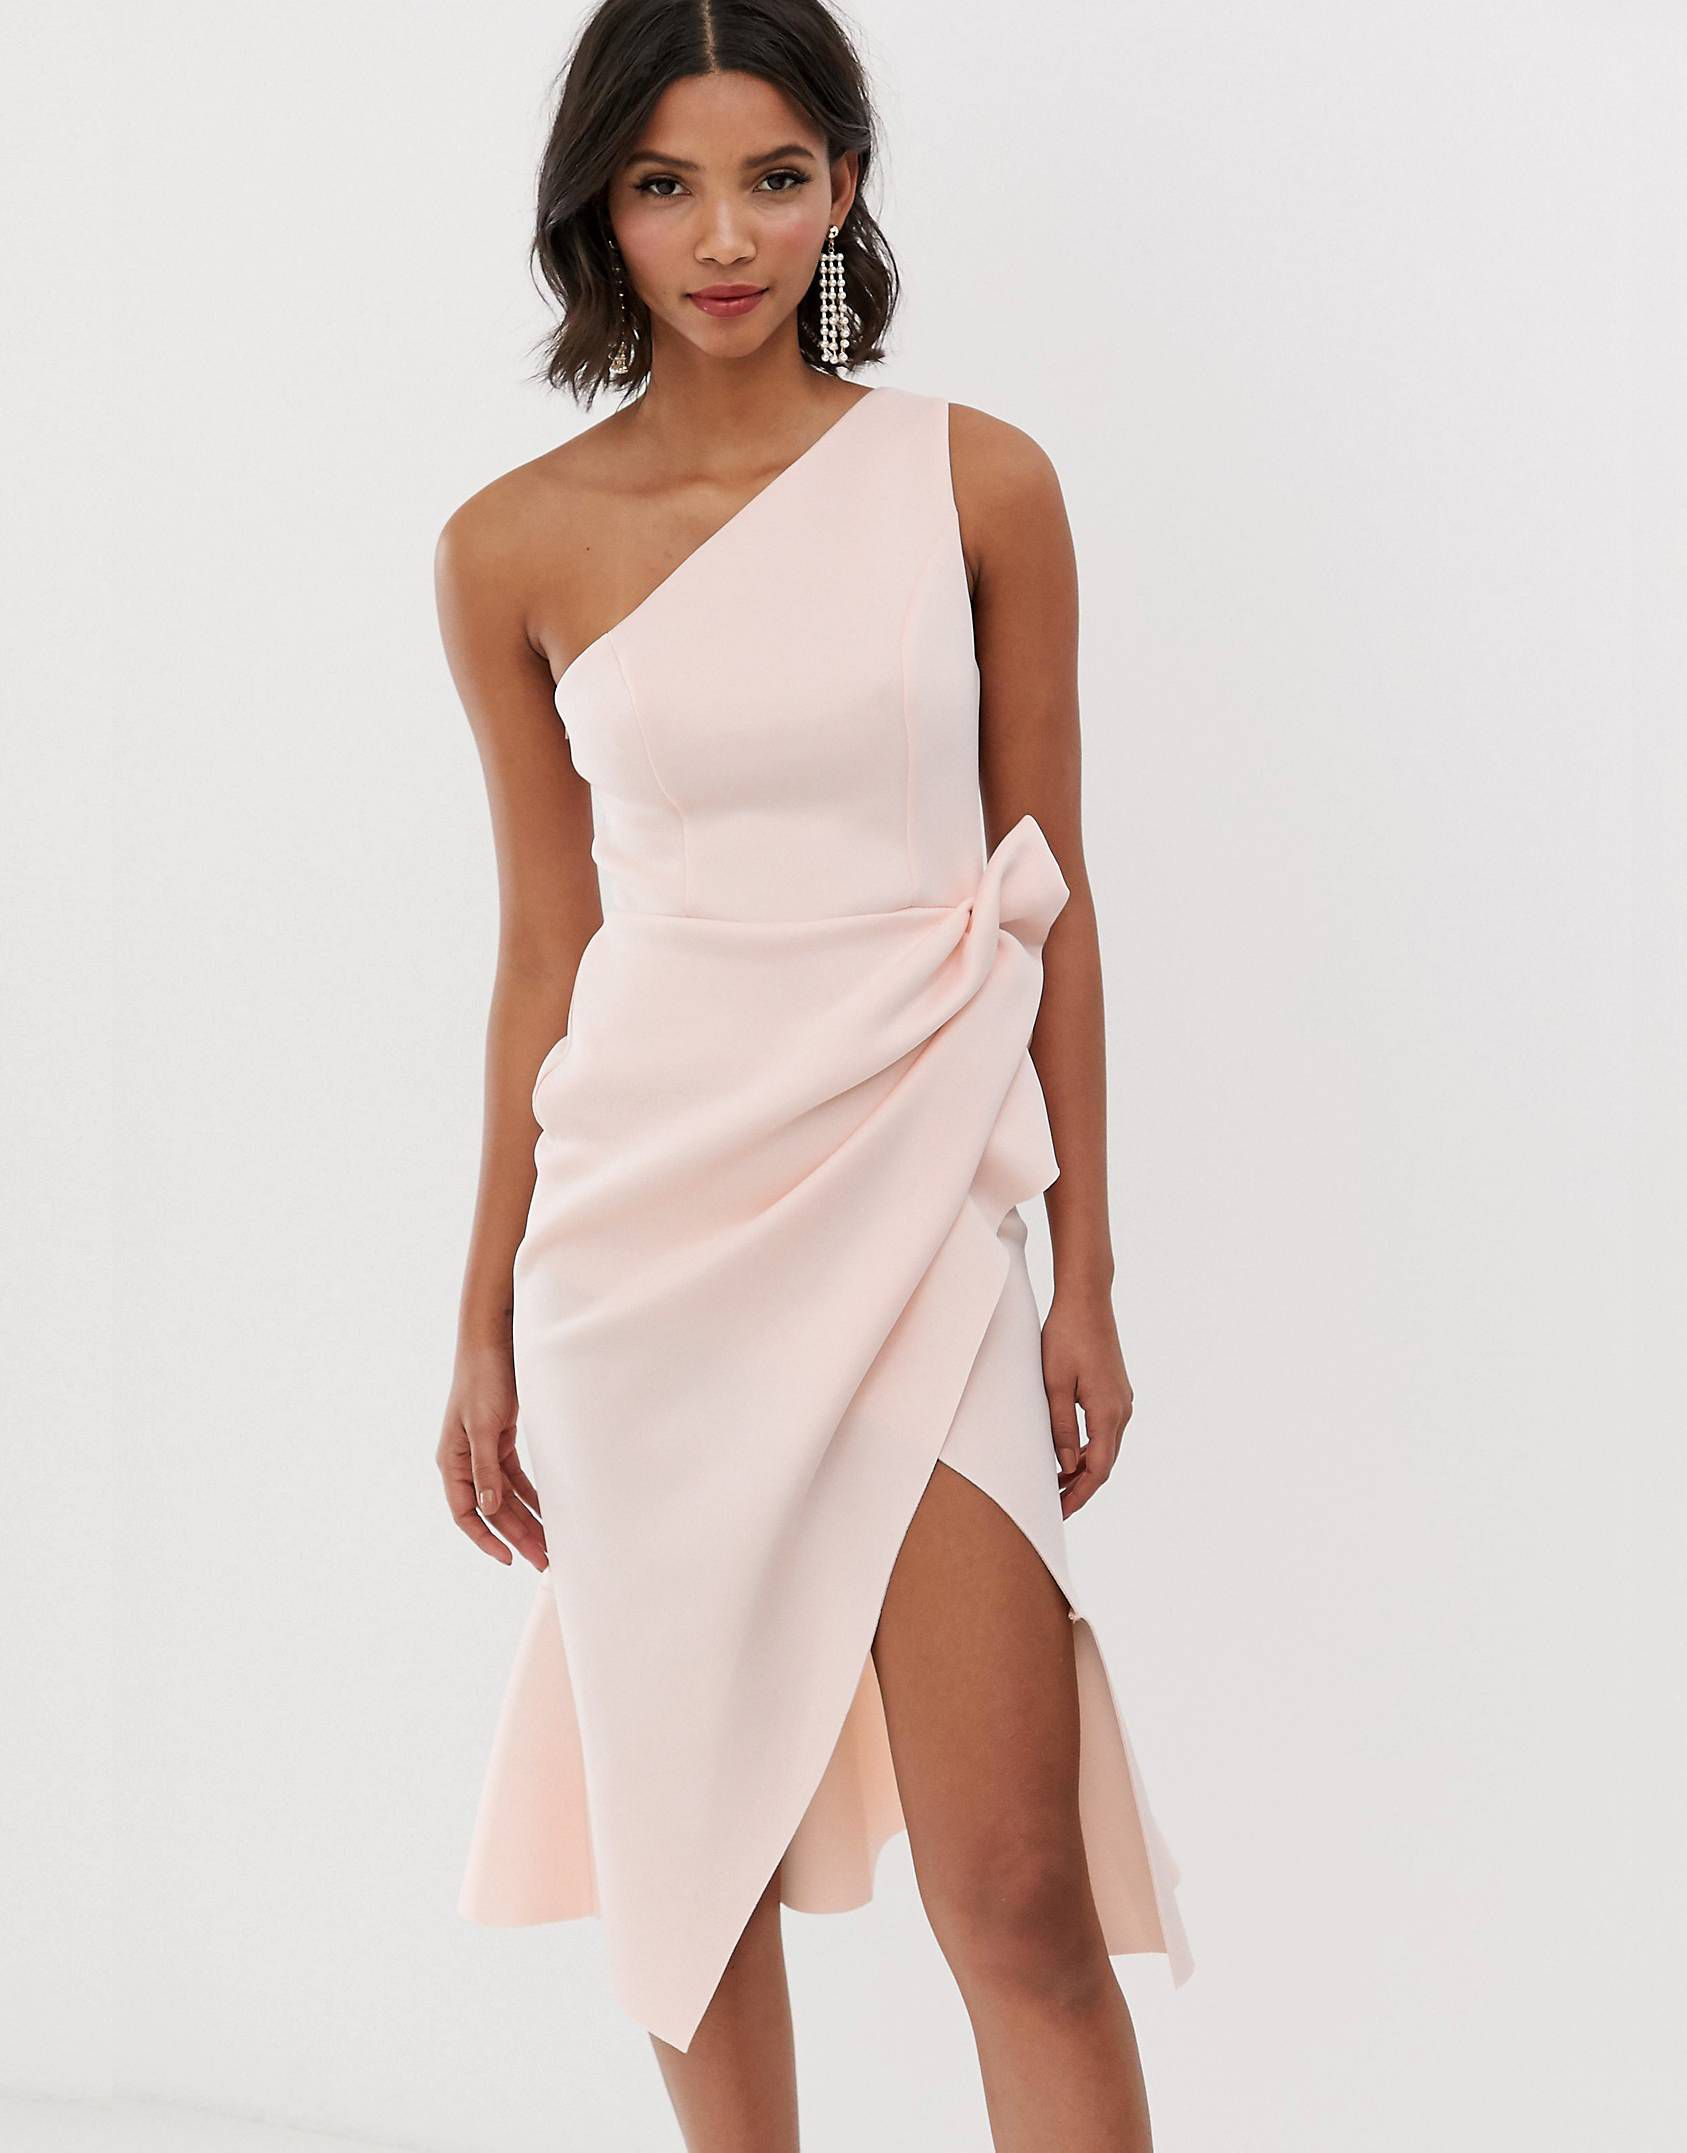 Pin By The Virtuist On Women Who Slay Together Stay Together Maxi Dress Prom Guest Dresses Party Outfits For Women [ 2153 x 1687 Pixel ]